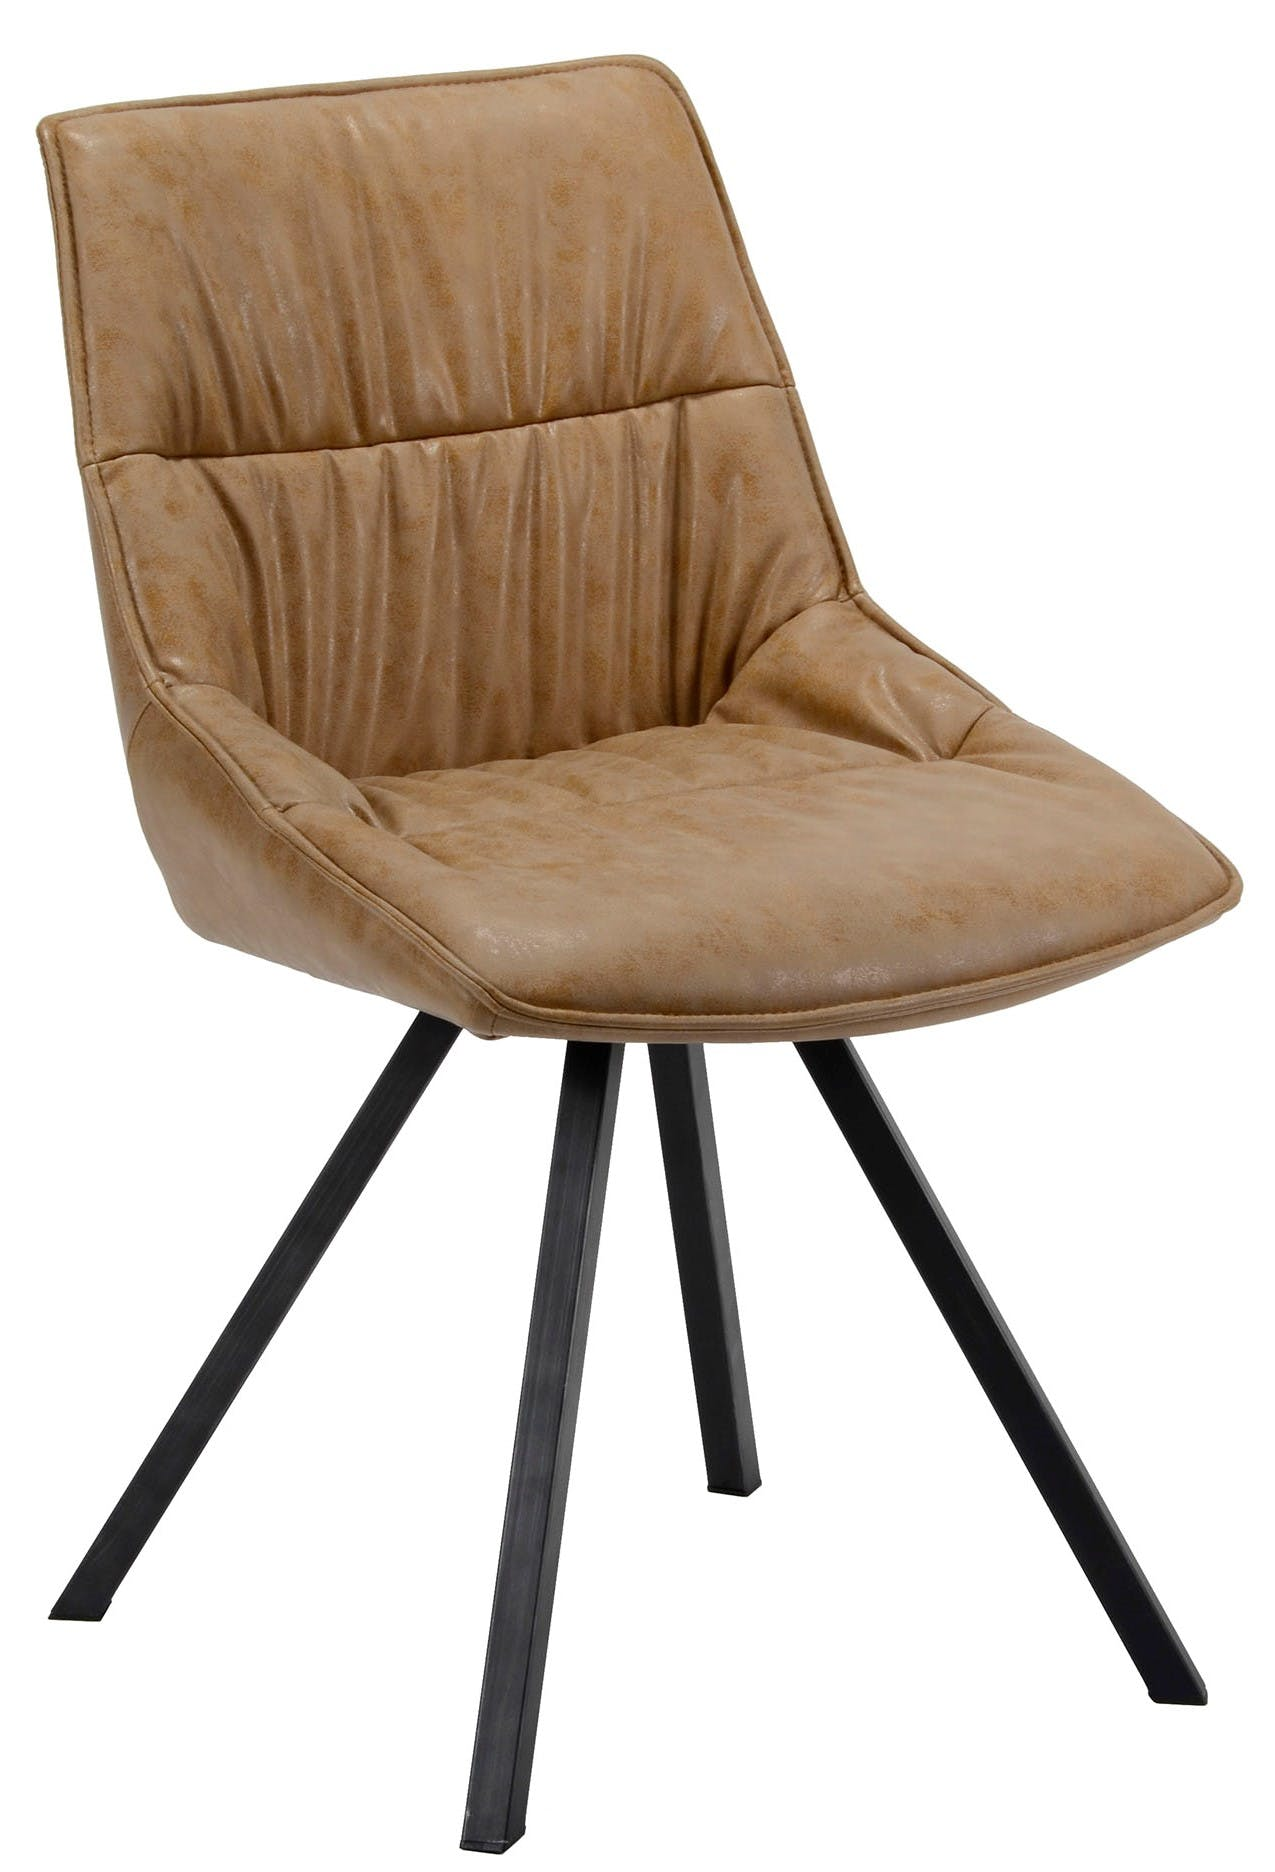 Chaise scandinave marron TRIBECA